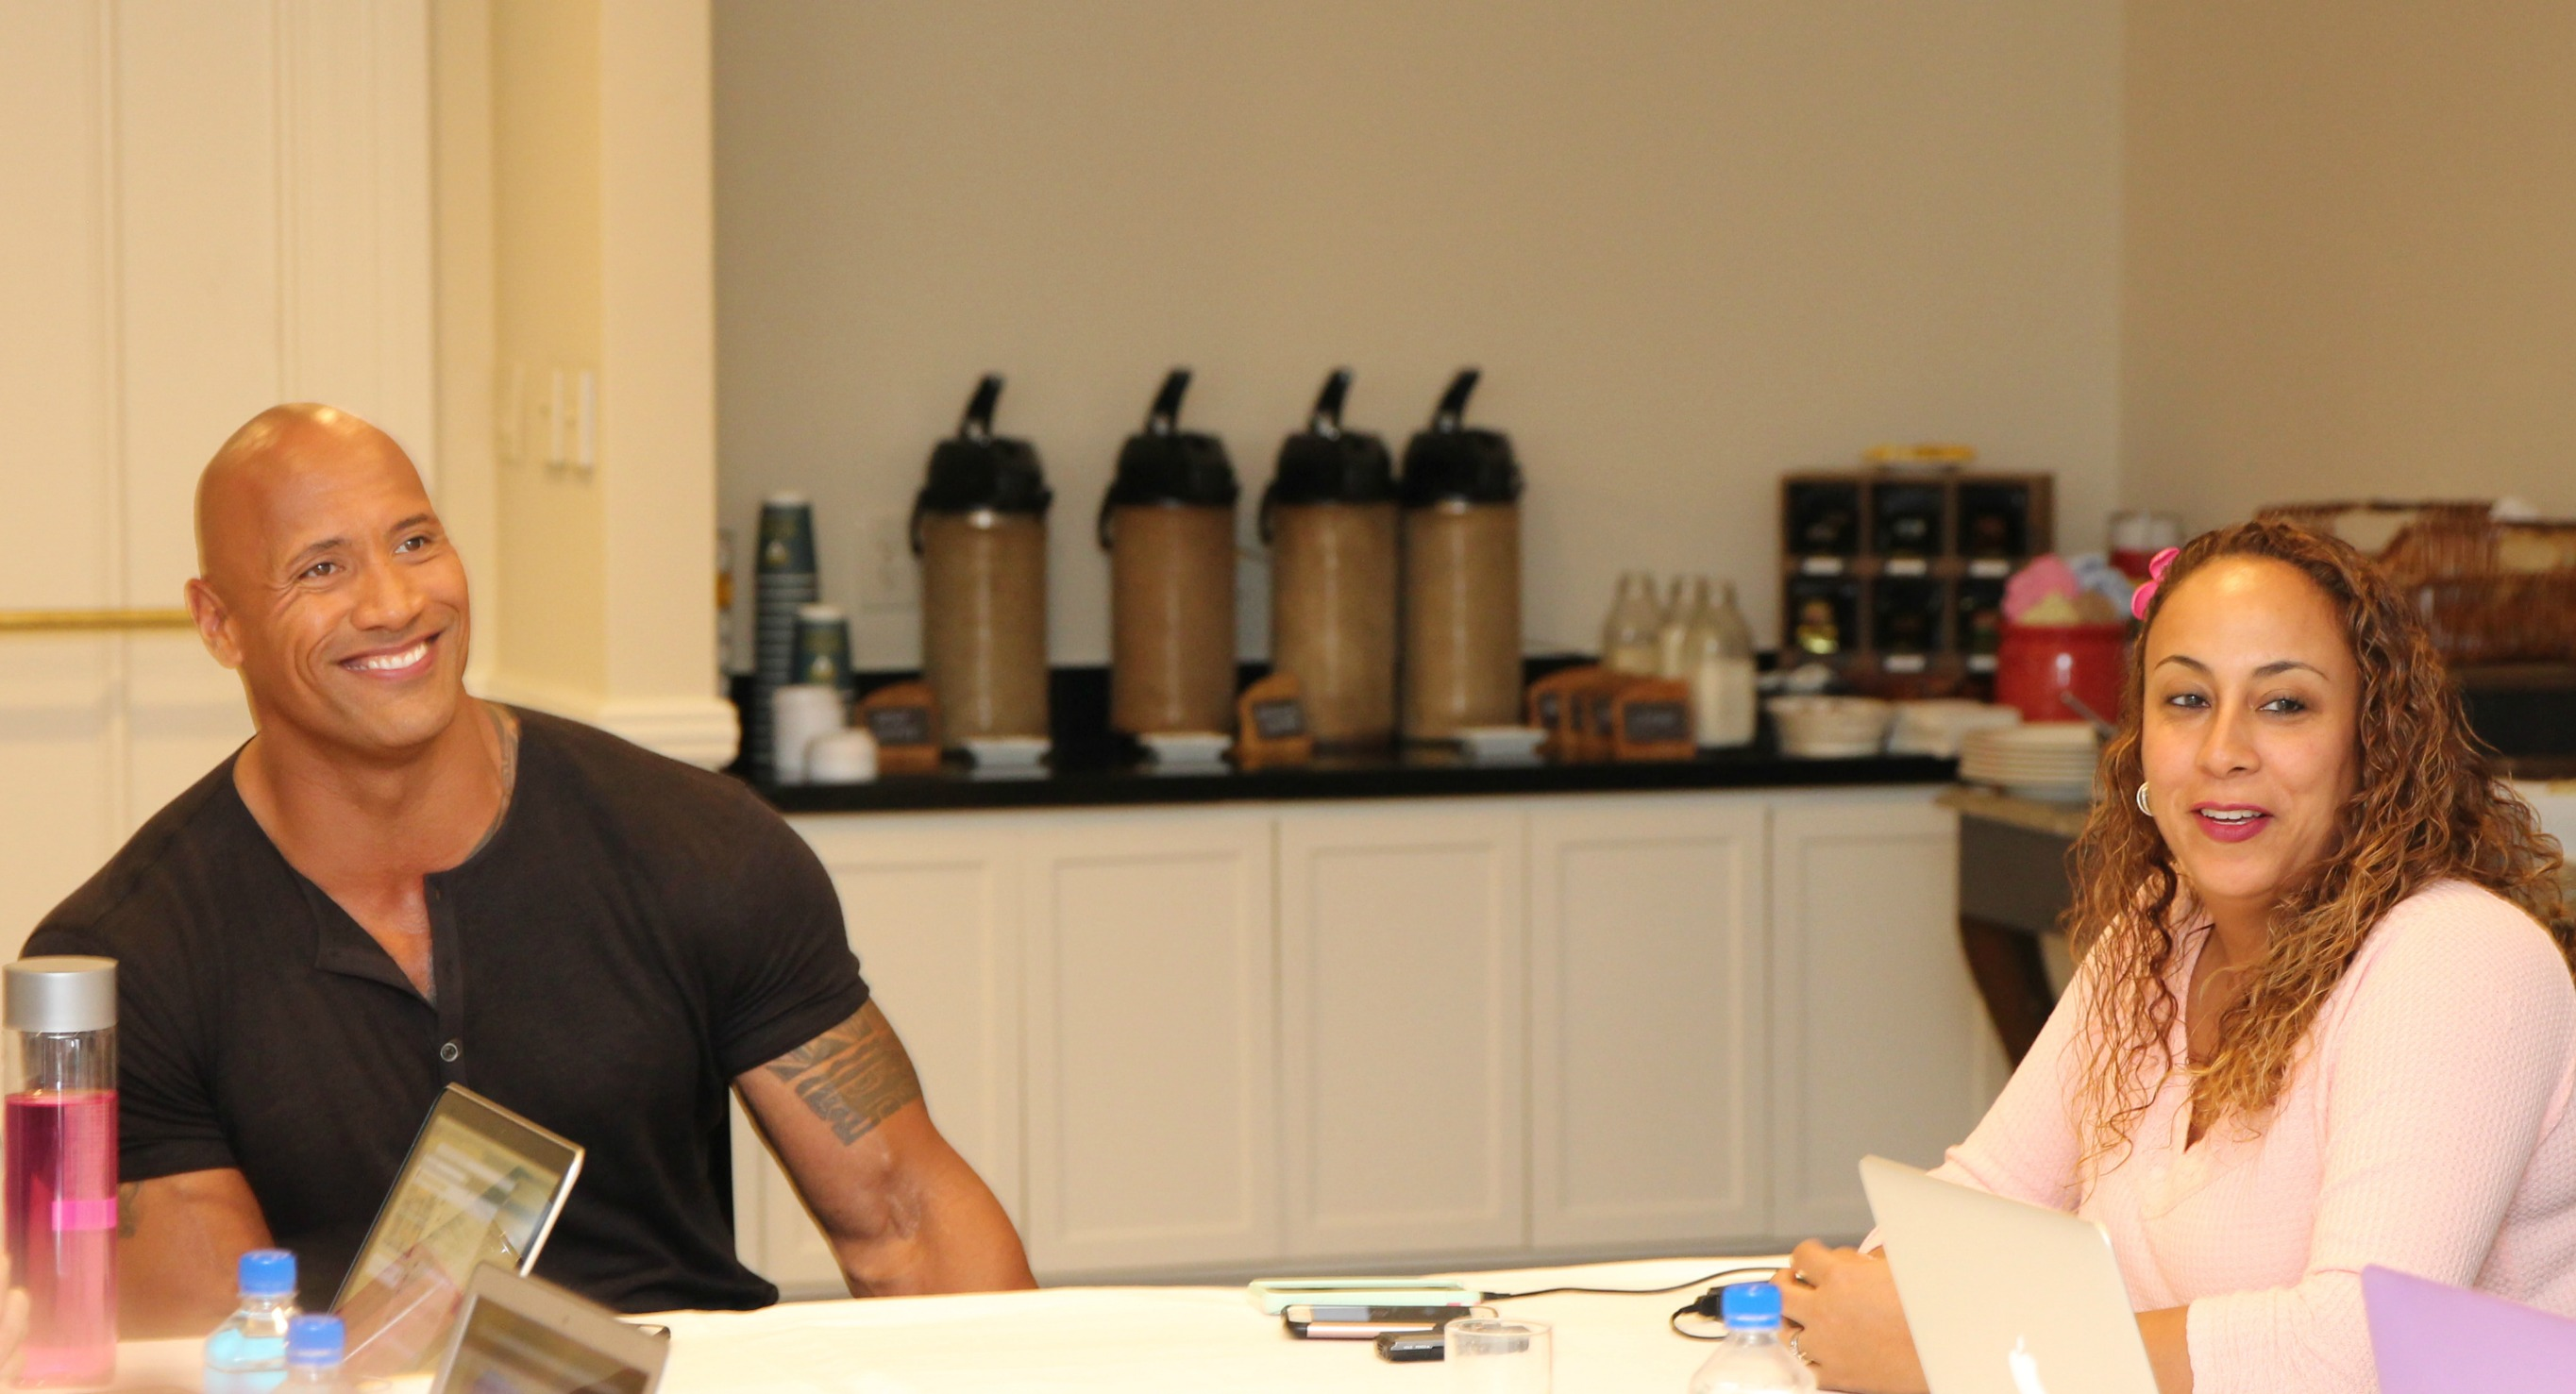 That Time I Made Dwayne Johnson A K A Quot The Rock Quot Sweat